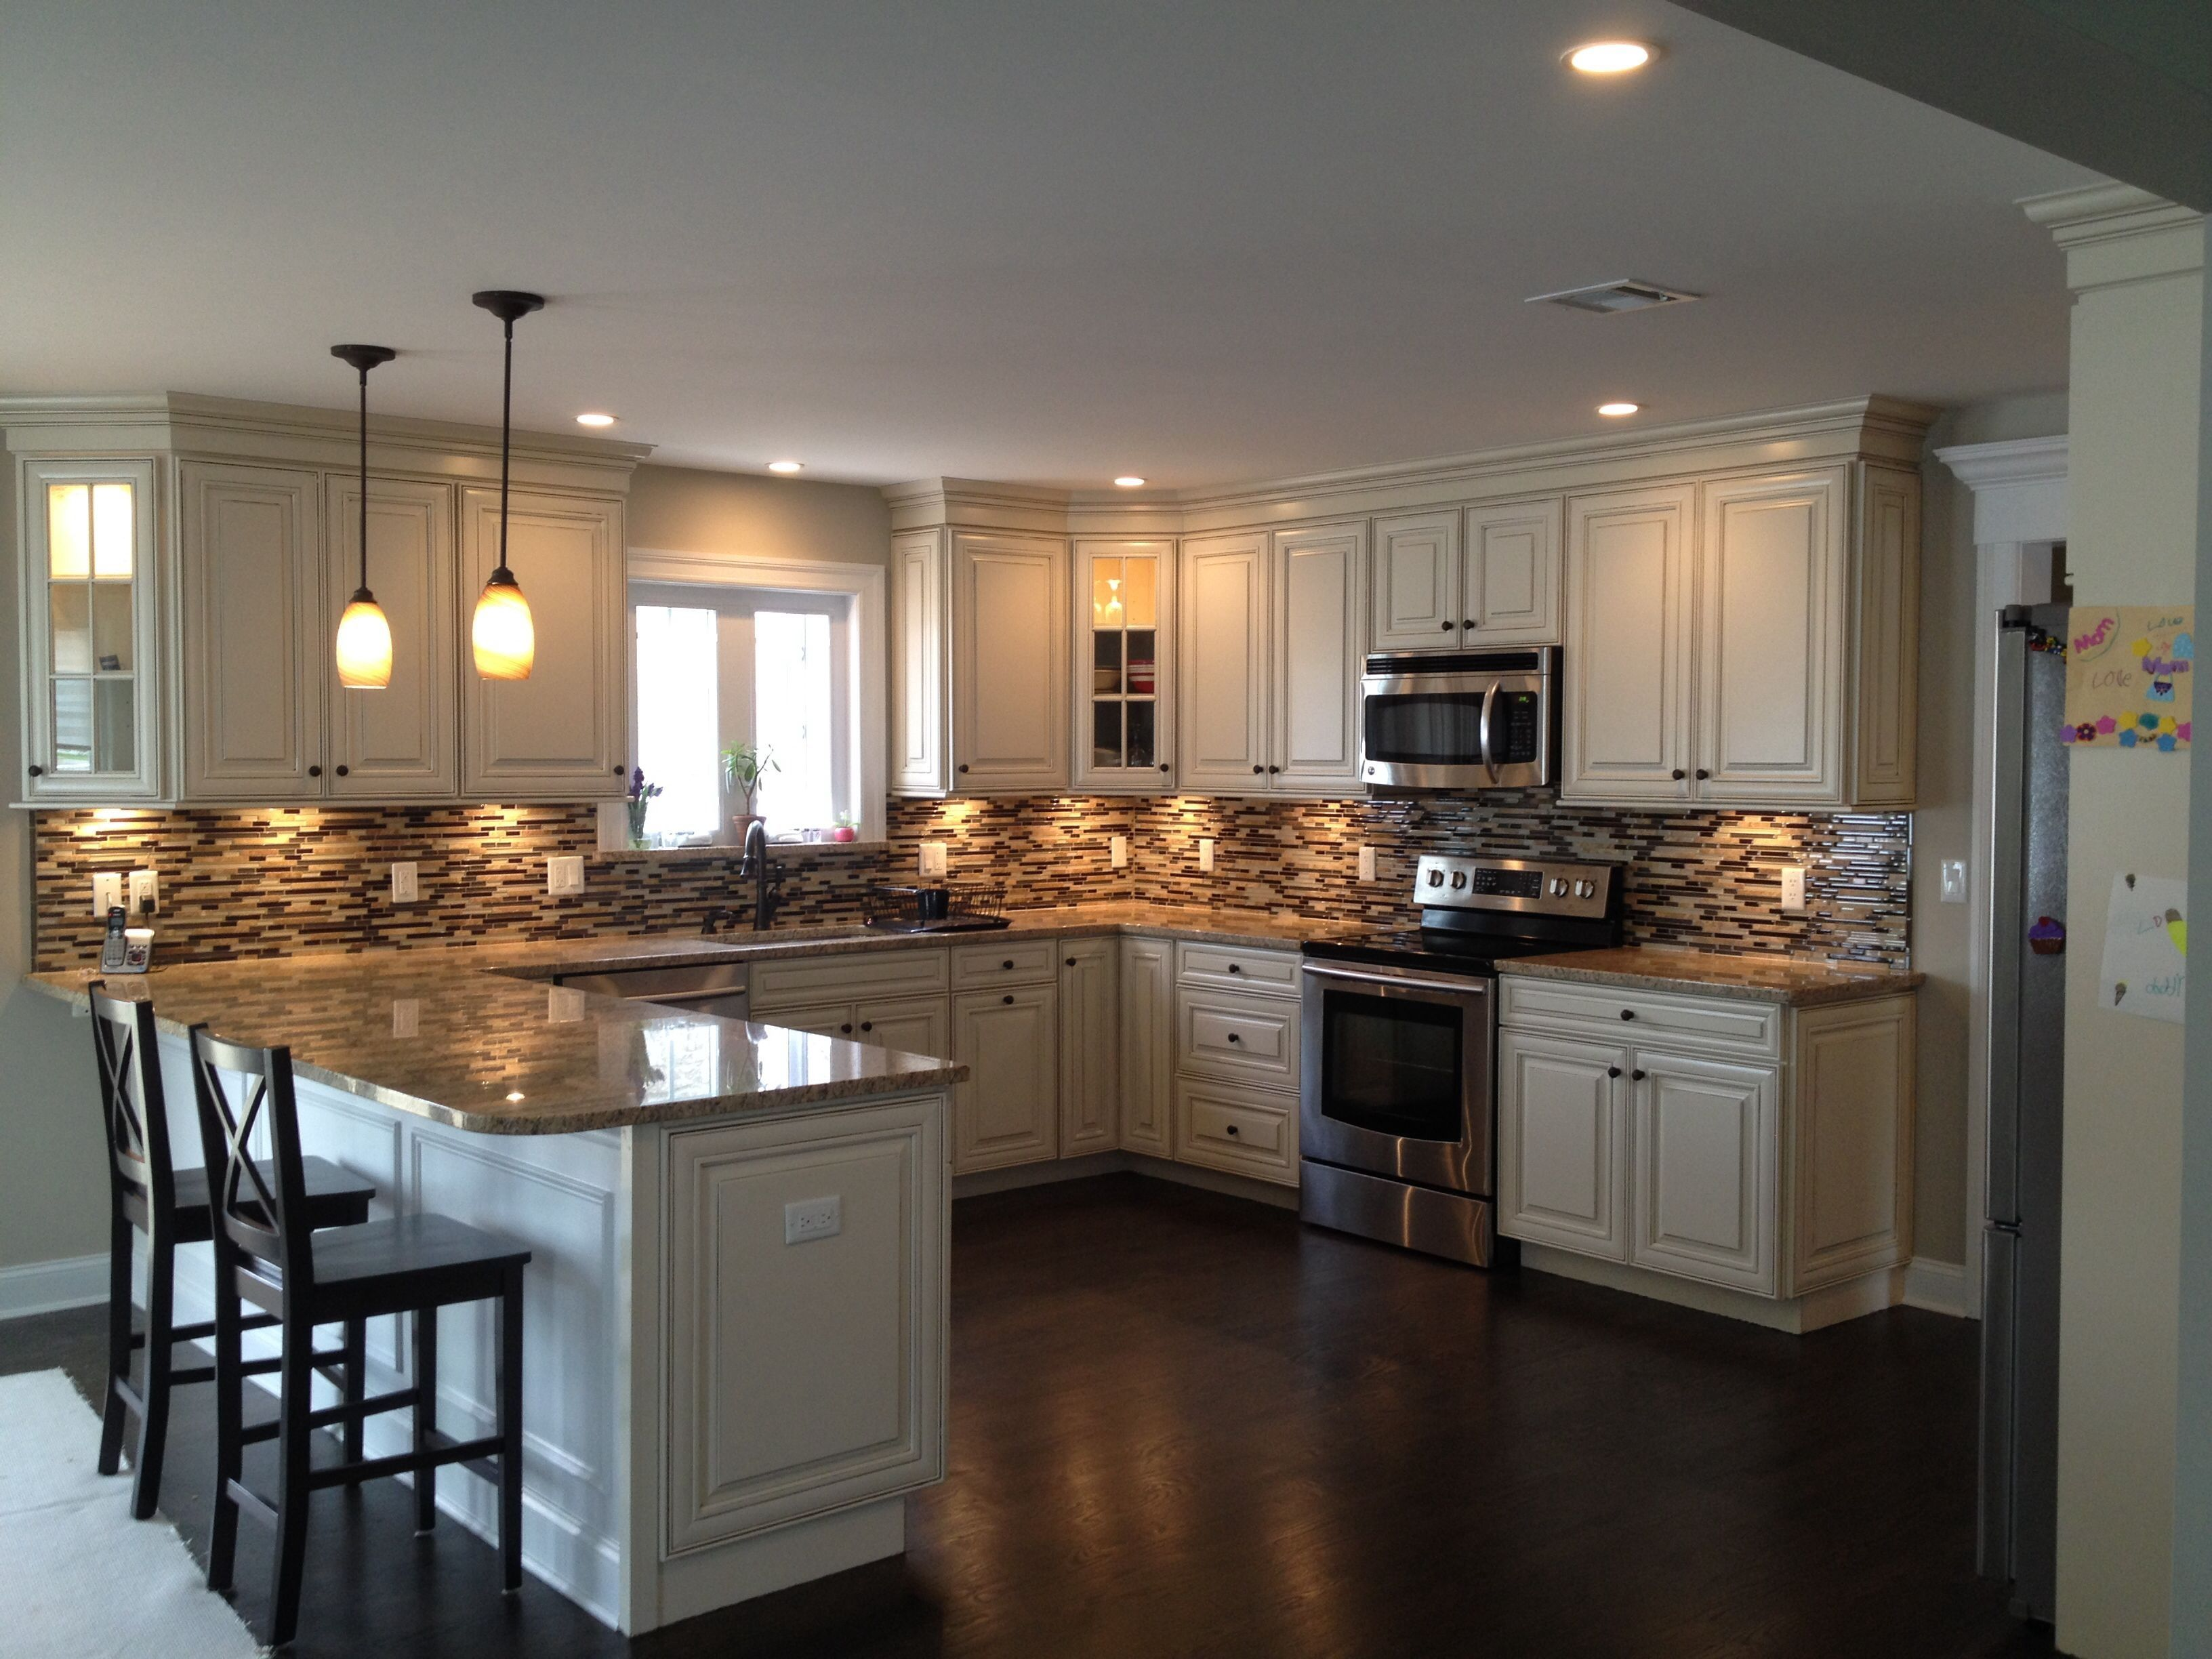 40 wonderful u shaped kitchen designs ideas in 2020 with images kitchen remodel small on kitchen ideas u shaped id=45906